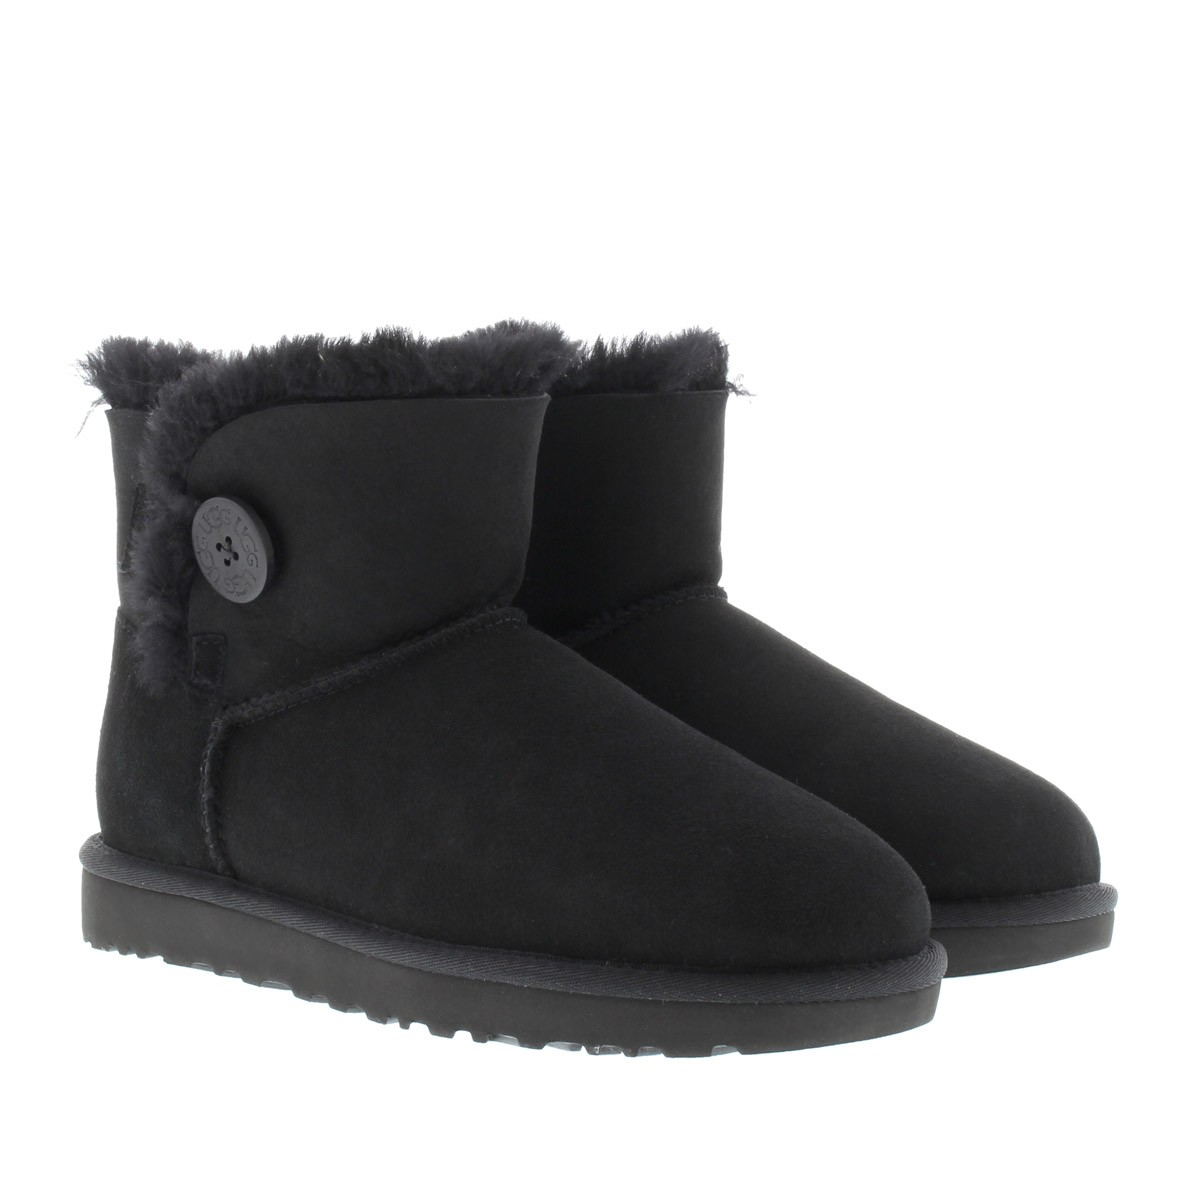 UGG Boots - W Mini Bailey Button II Black - in schwarz - für Damen